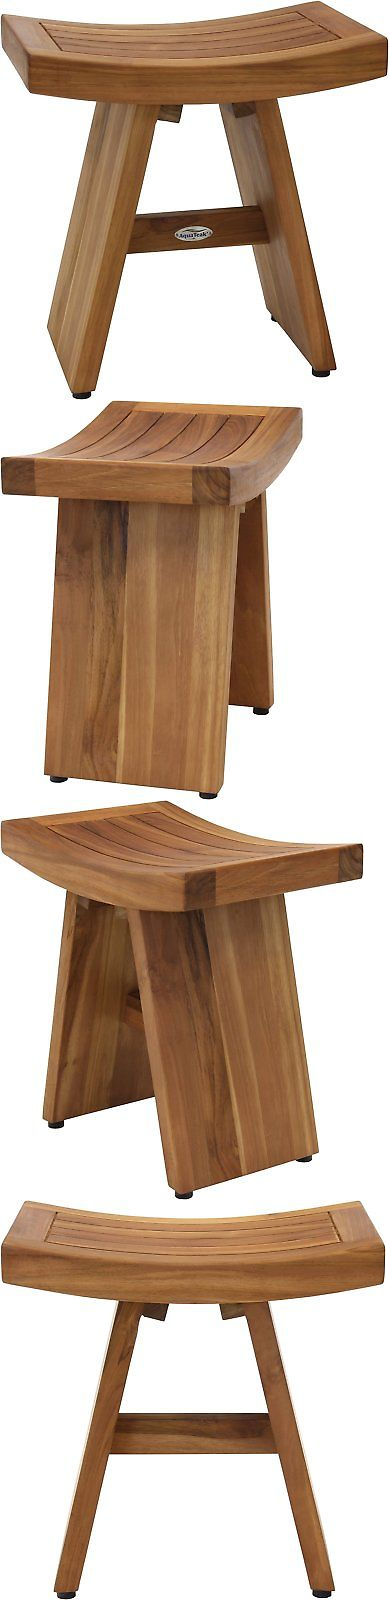 Shower and Bath Seats: Bathing Benches Chair Original Asia 18 Teak ...